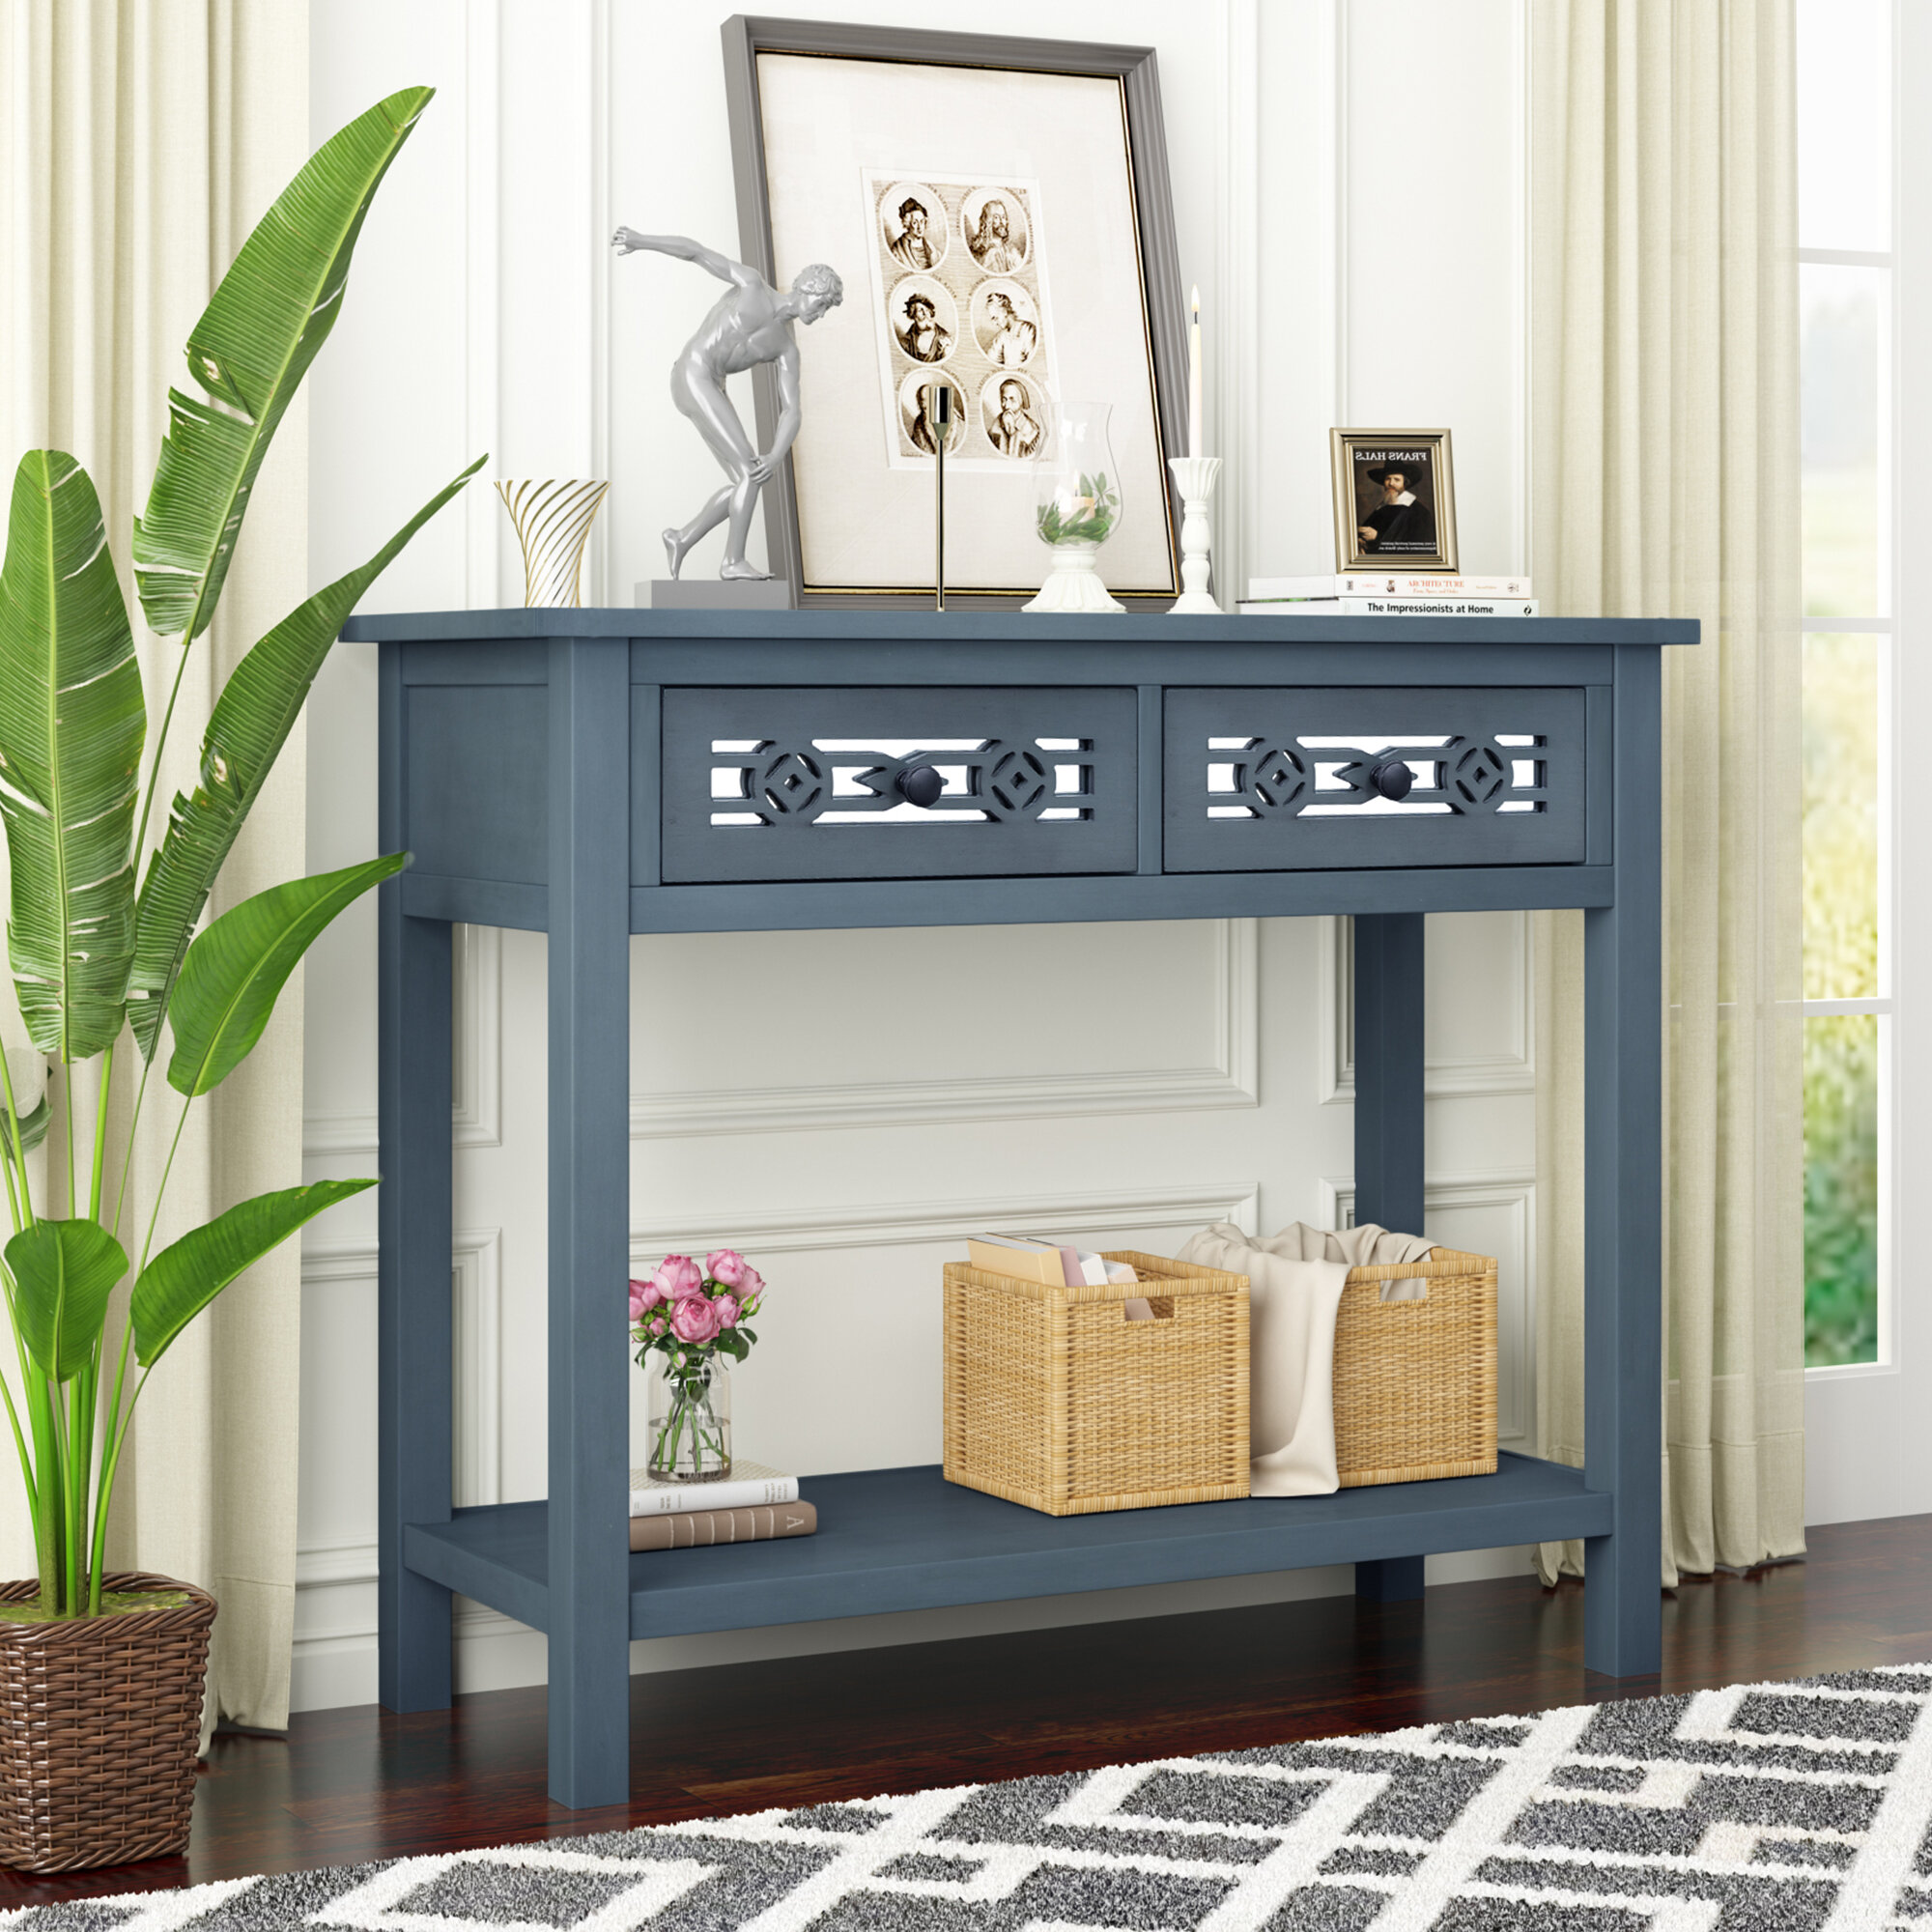 20.20'' Console Table